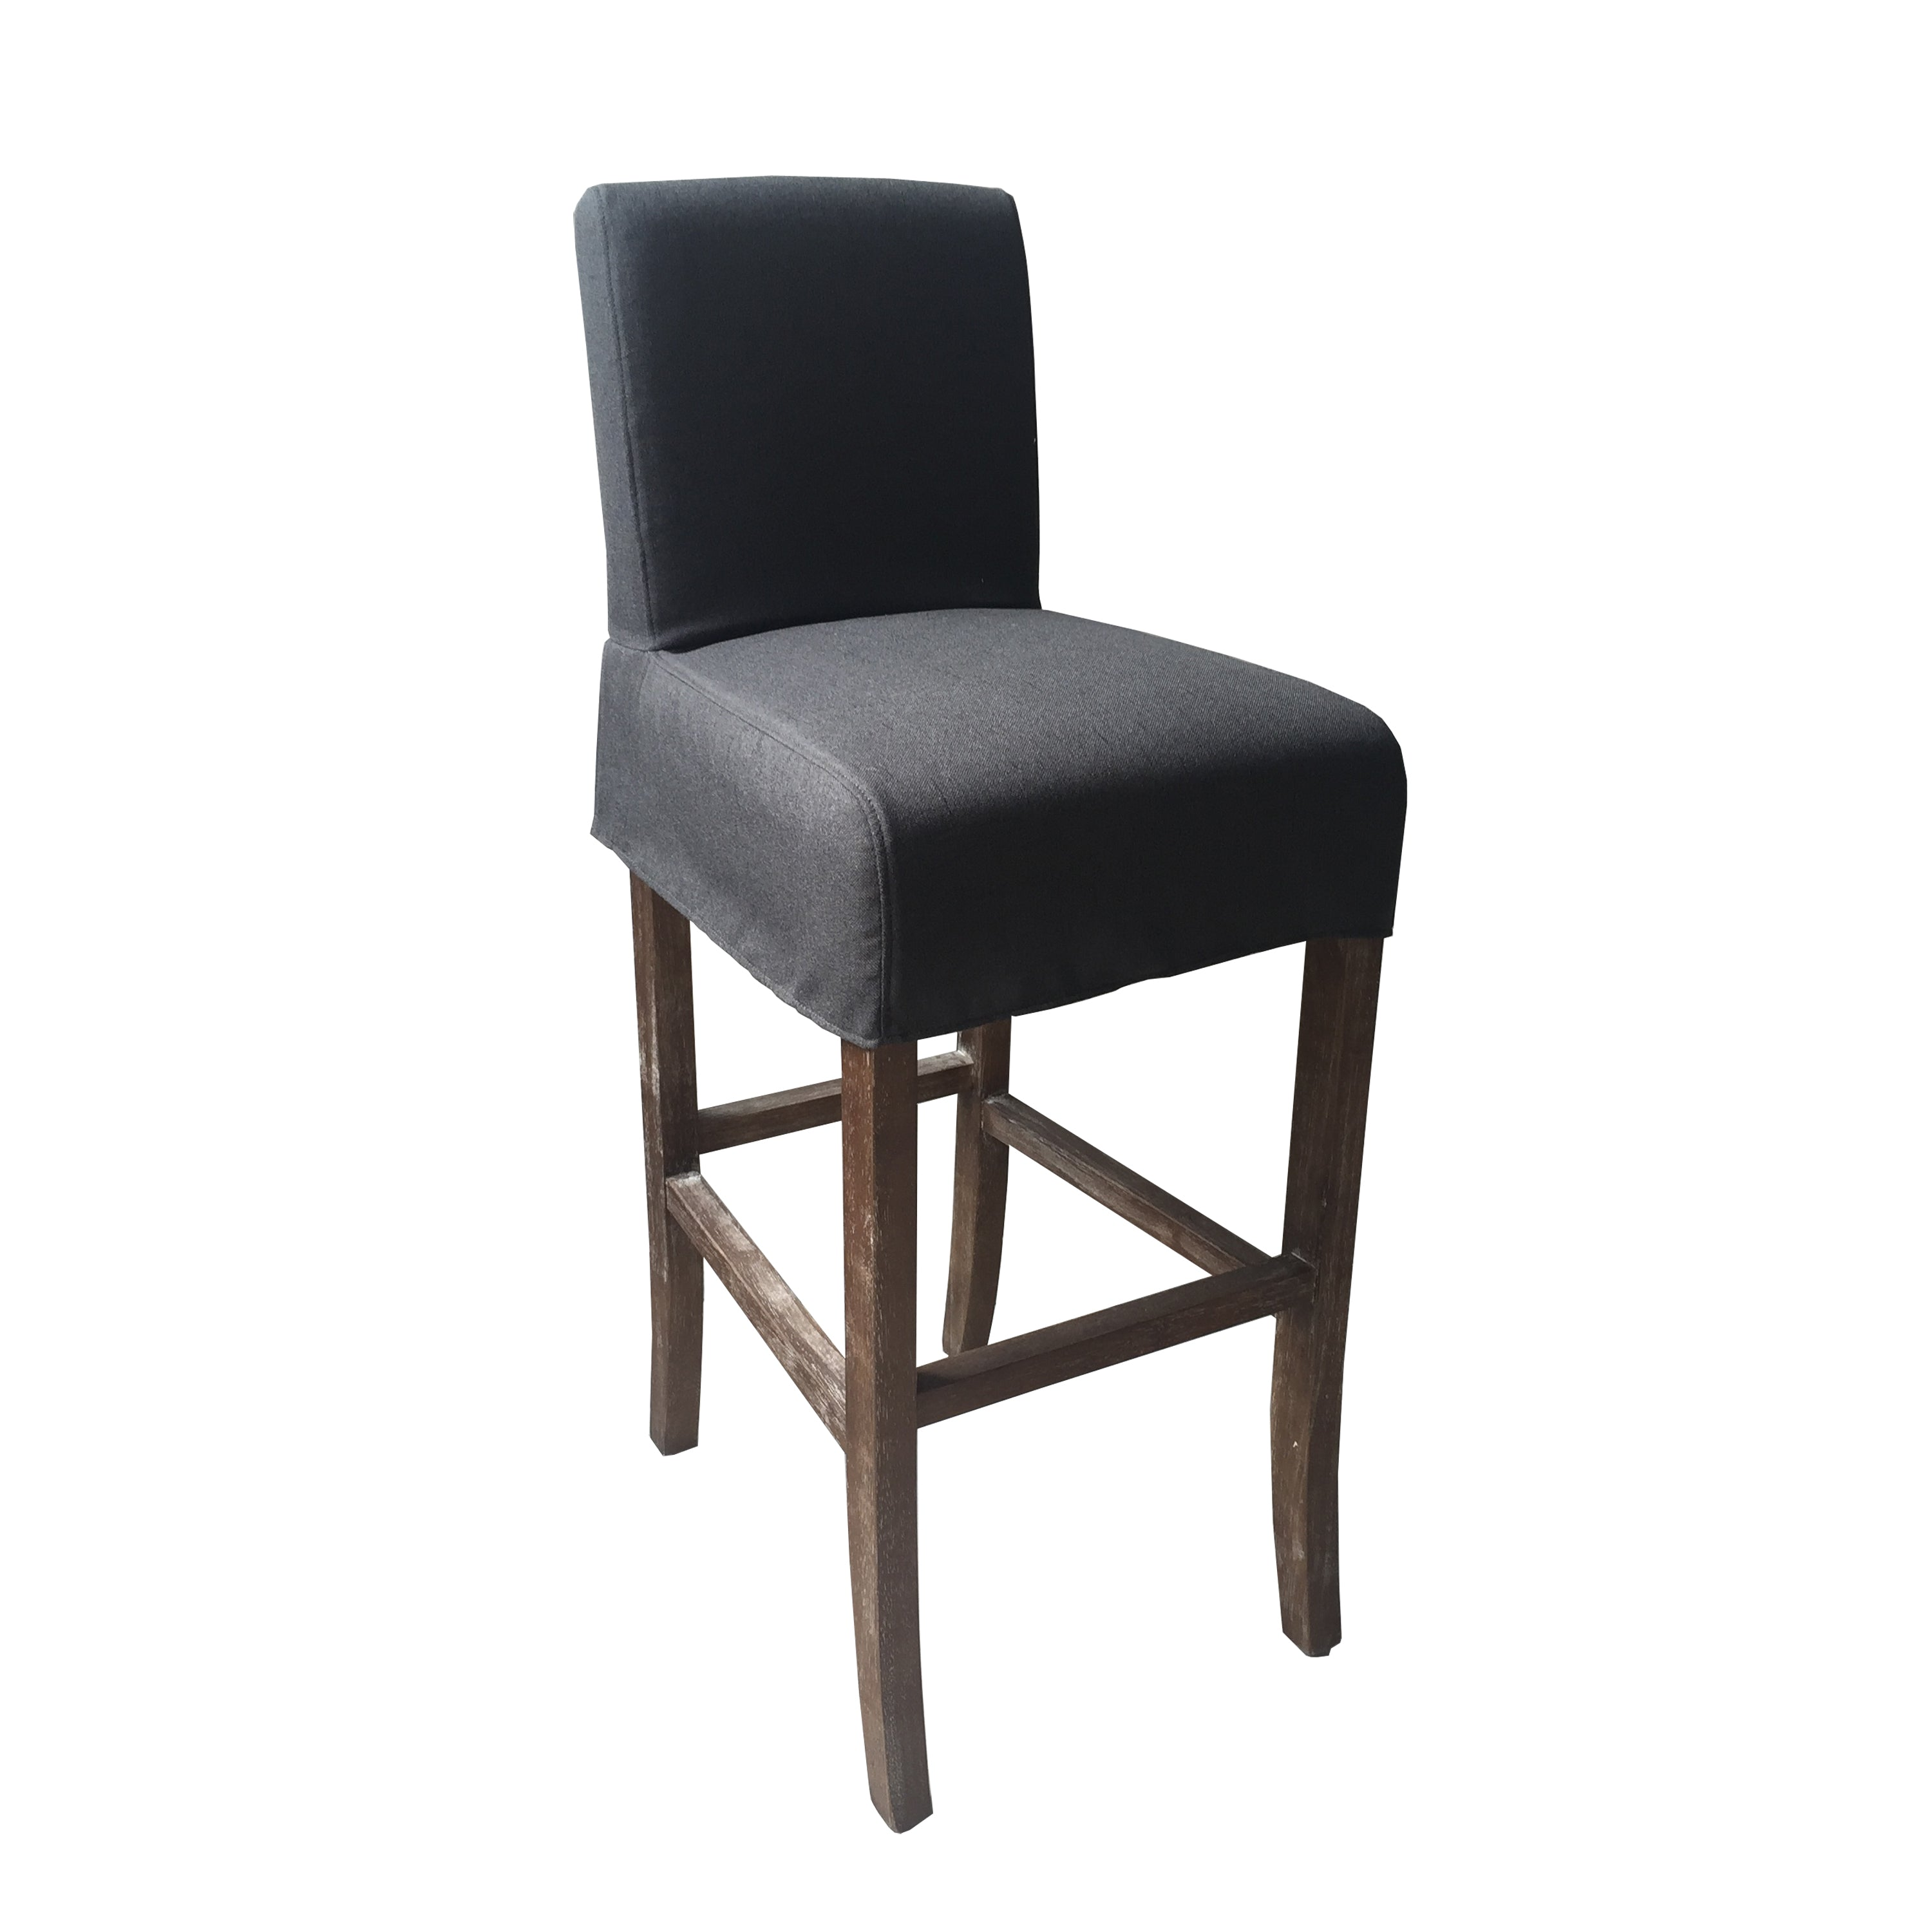 Sensational Pacific Beach Slipcovered Counter Stool Charcoal Linen Gmtry Best Dining Table And Chair Ideas Images Gmtryco